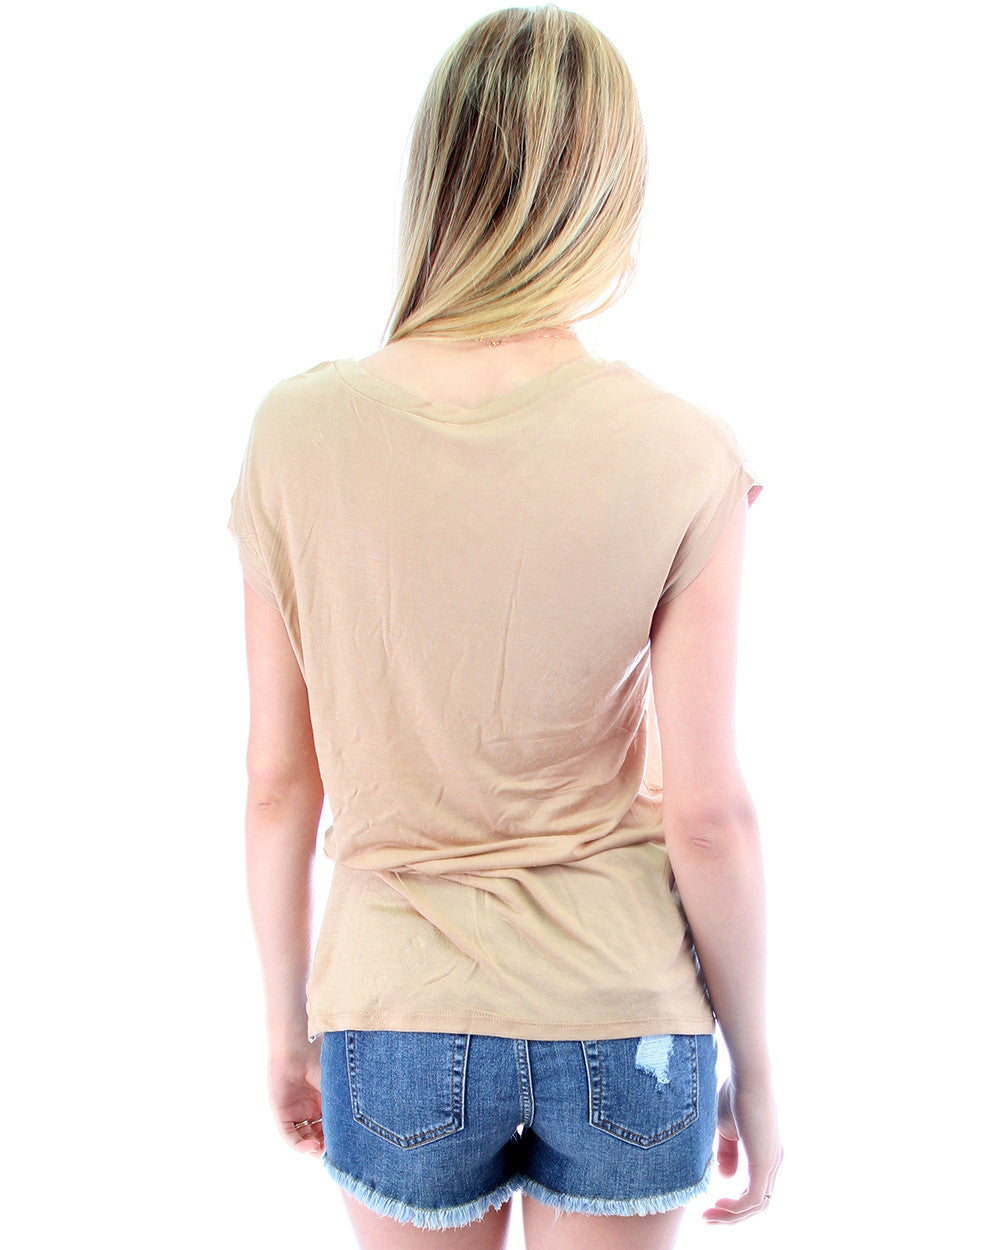 Loose Fitting Tee with Zipper in LT Camel